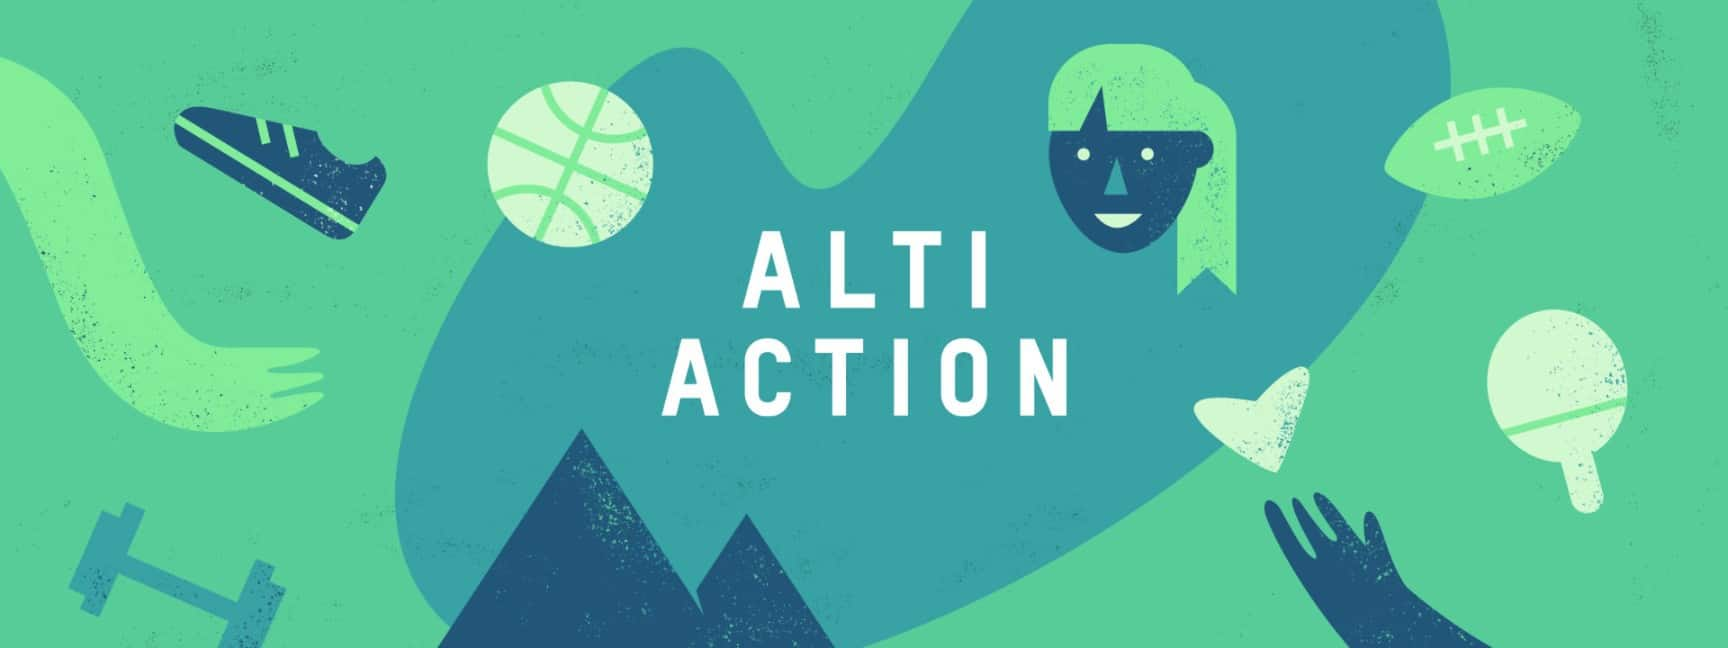 Alti Action 2021 – Join the Cause